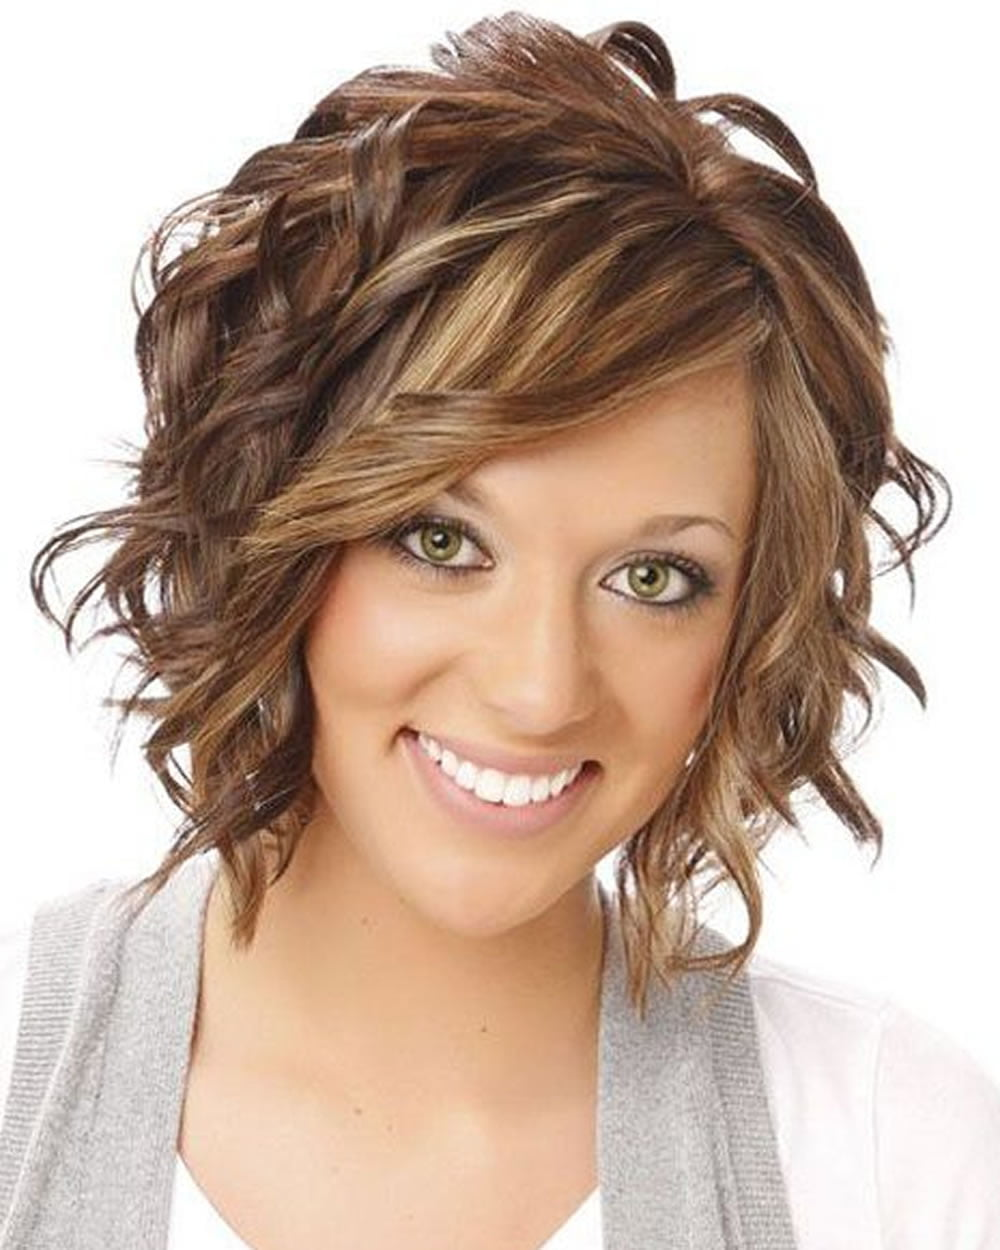 2018 permed hairstyles for short hair – best 32 curly short